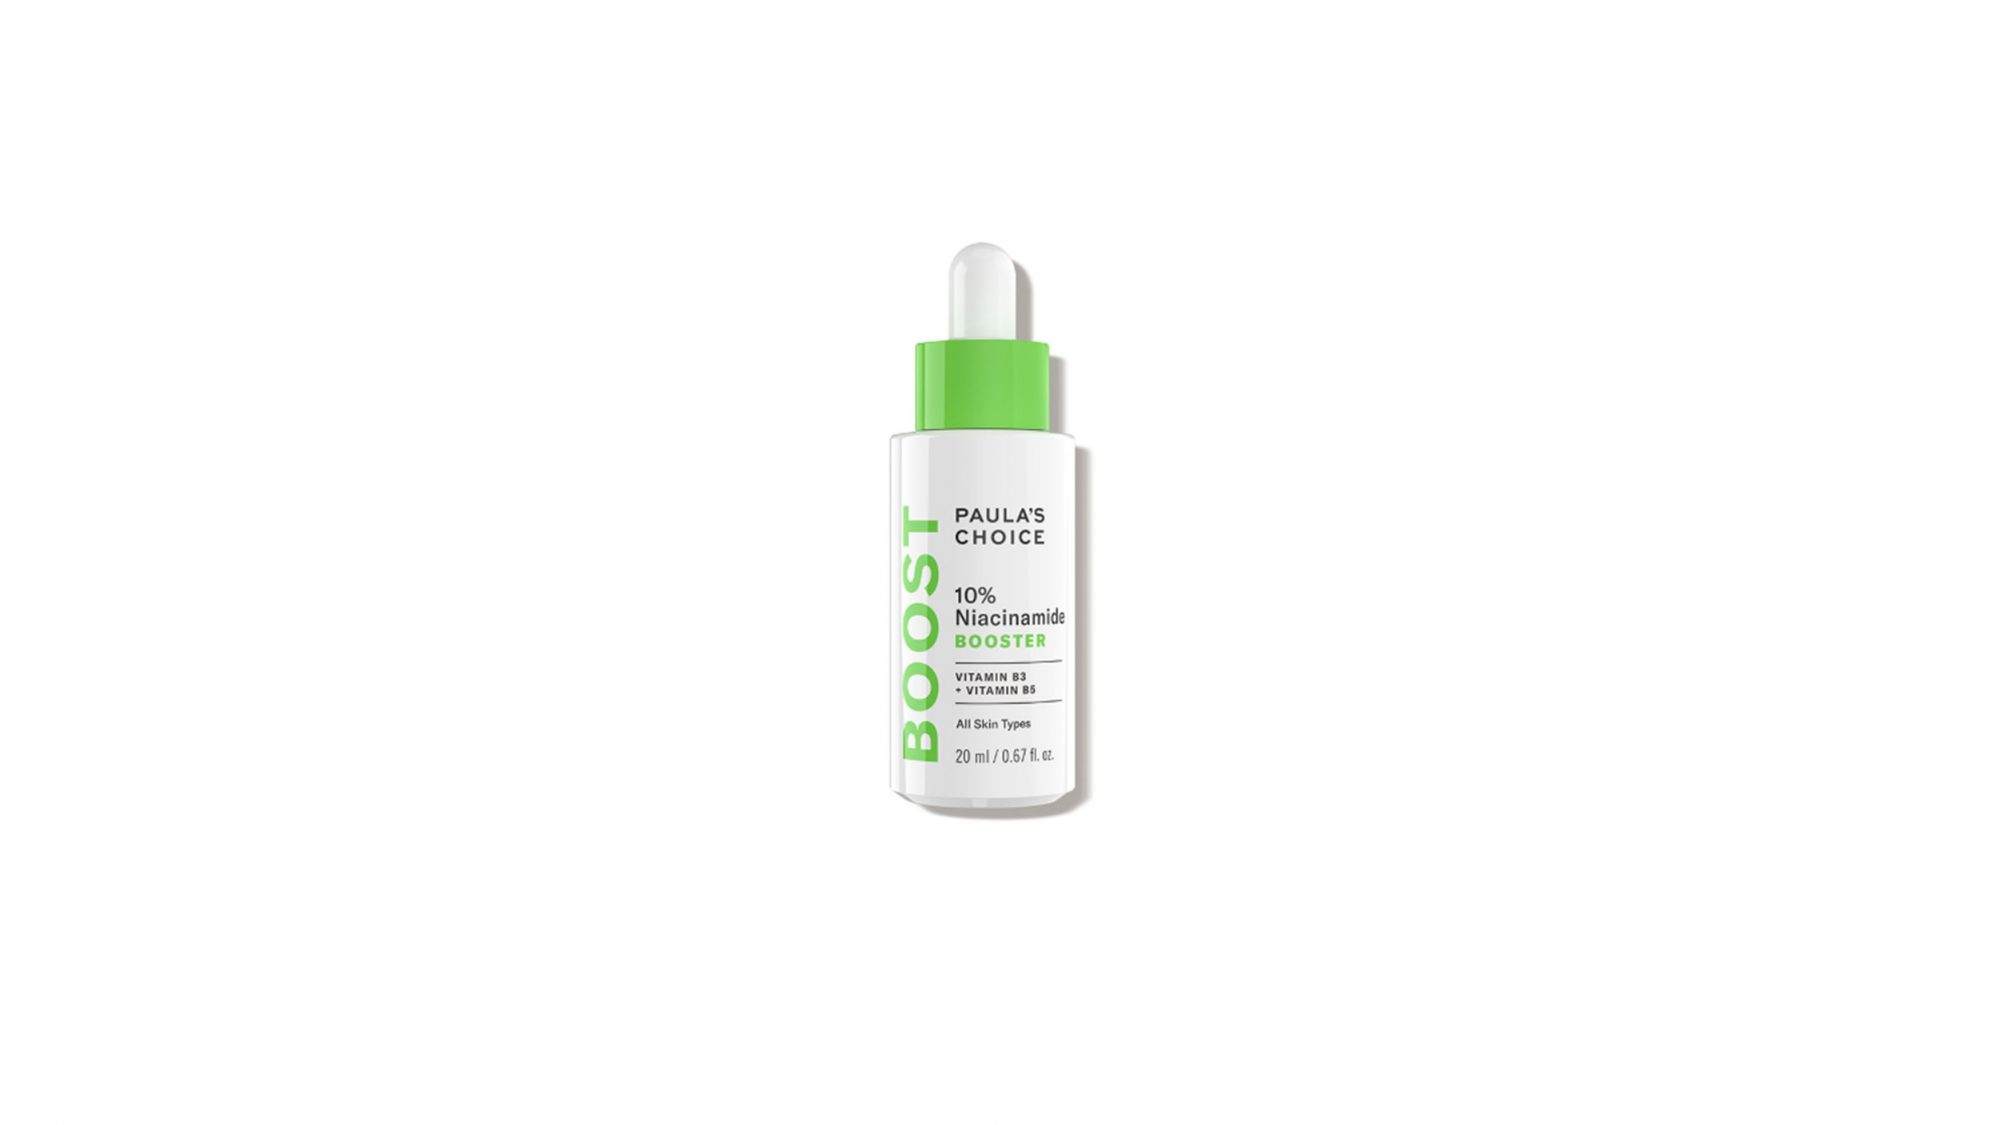 Best brightening product: Paula's Choice Niacinamide Booster